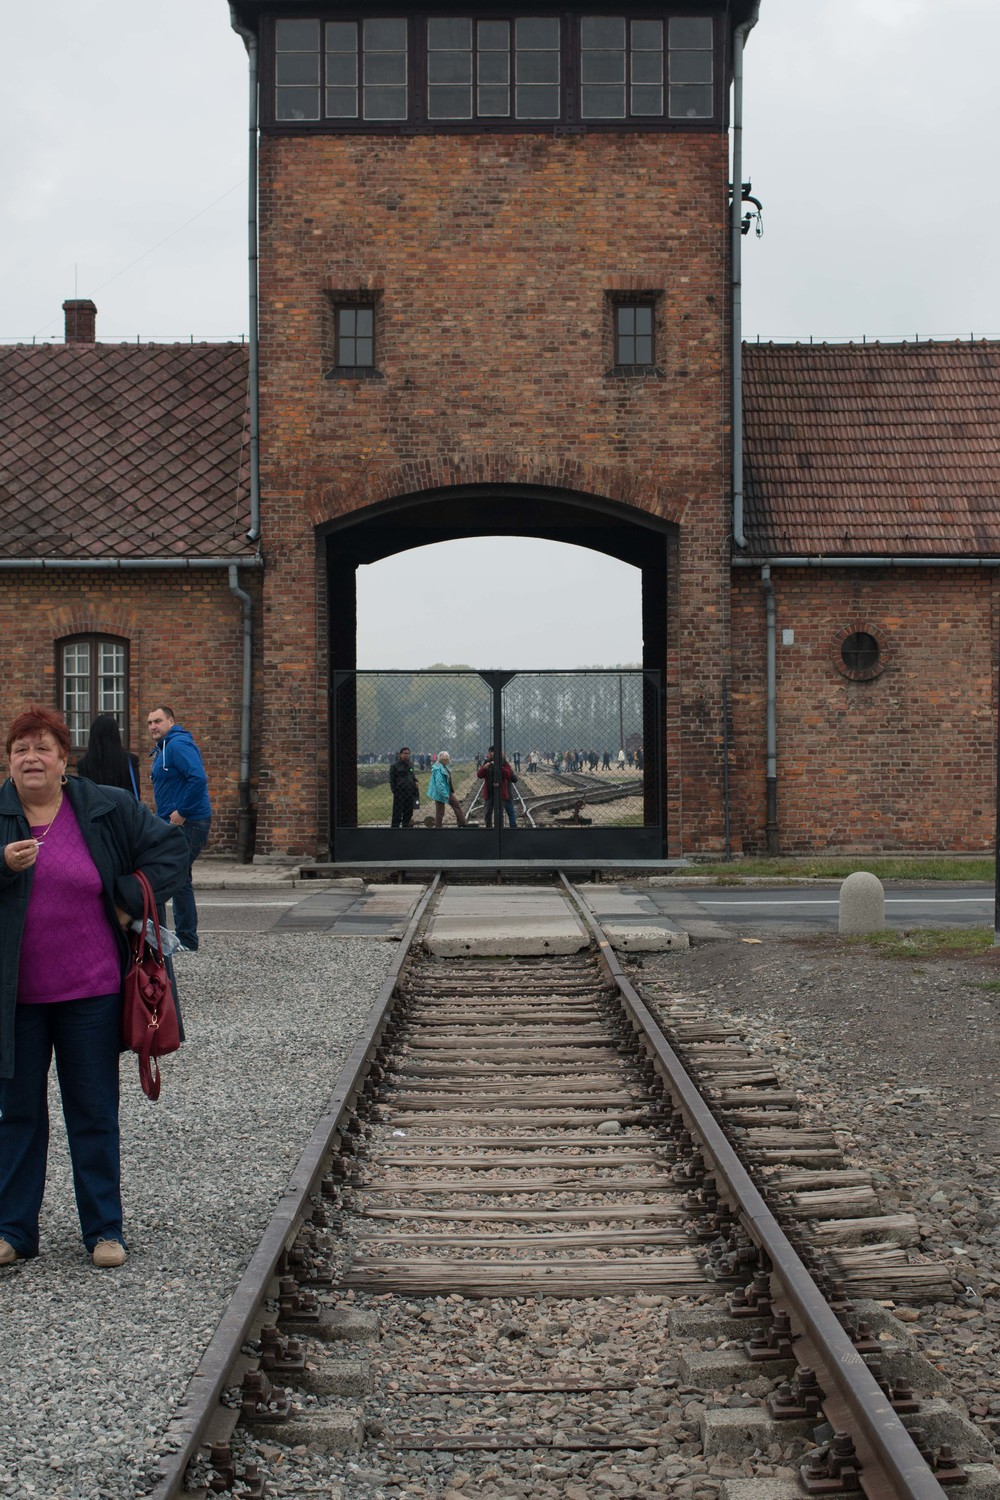 Entrance to Birkenau. Hundreds of thousands passed through here